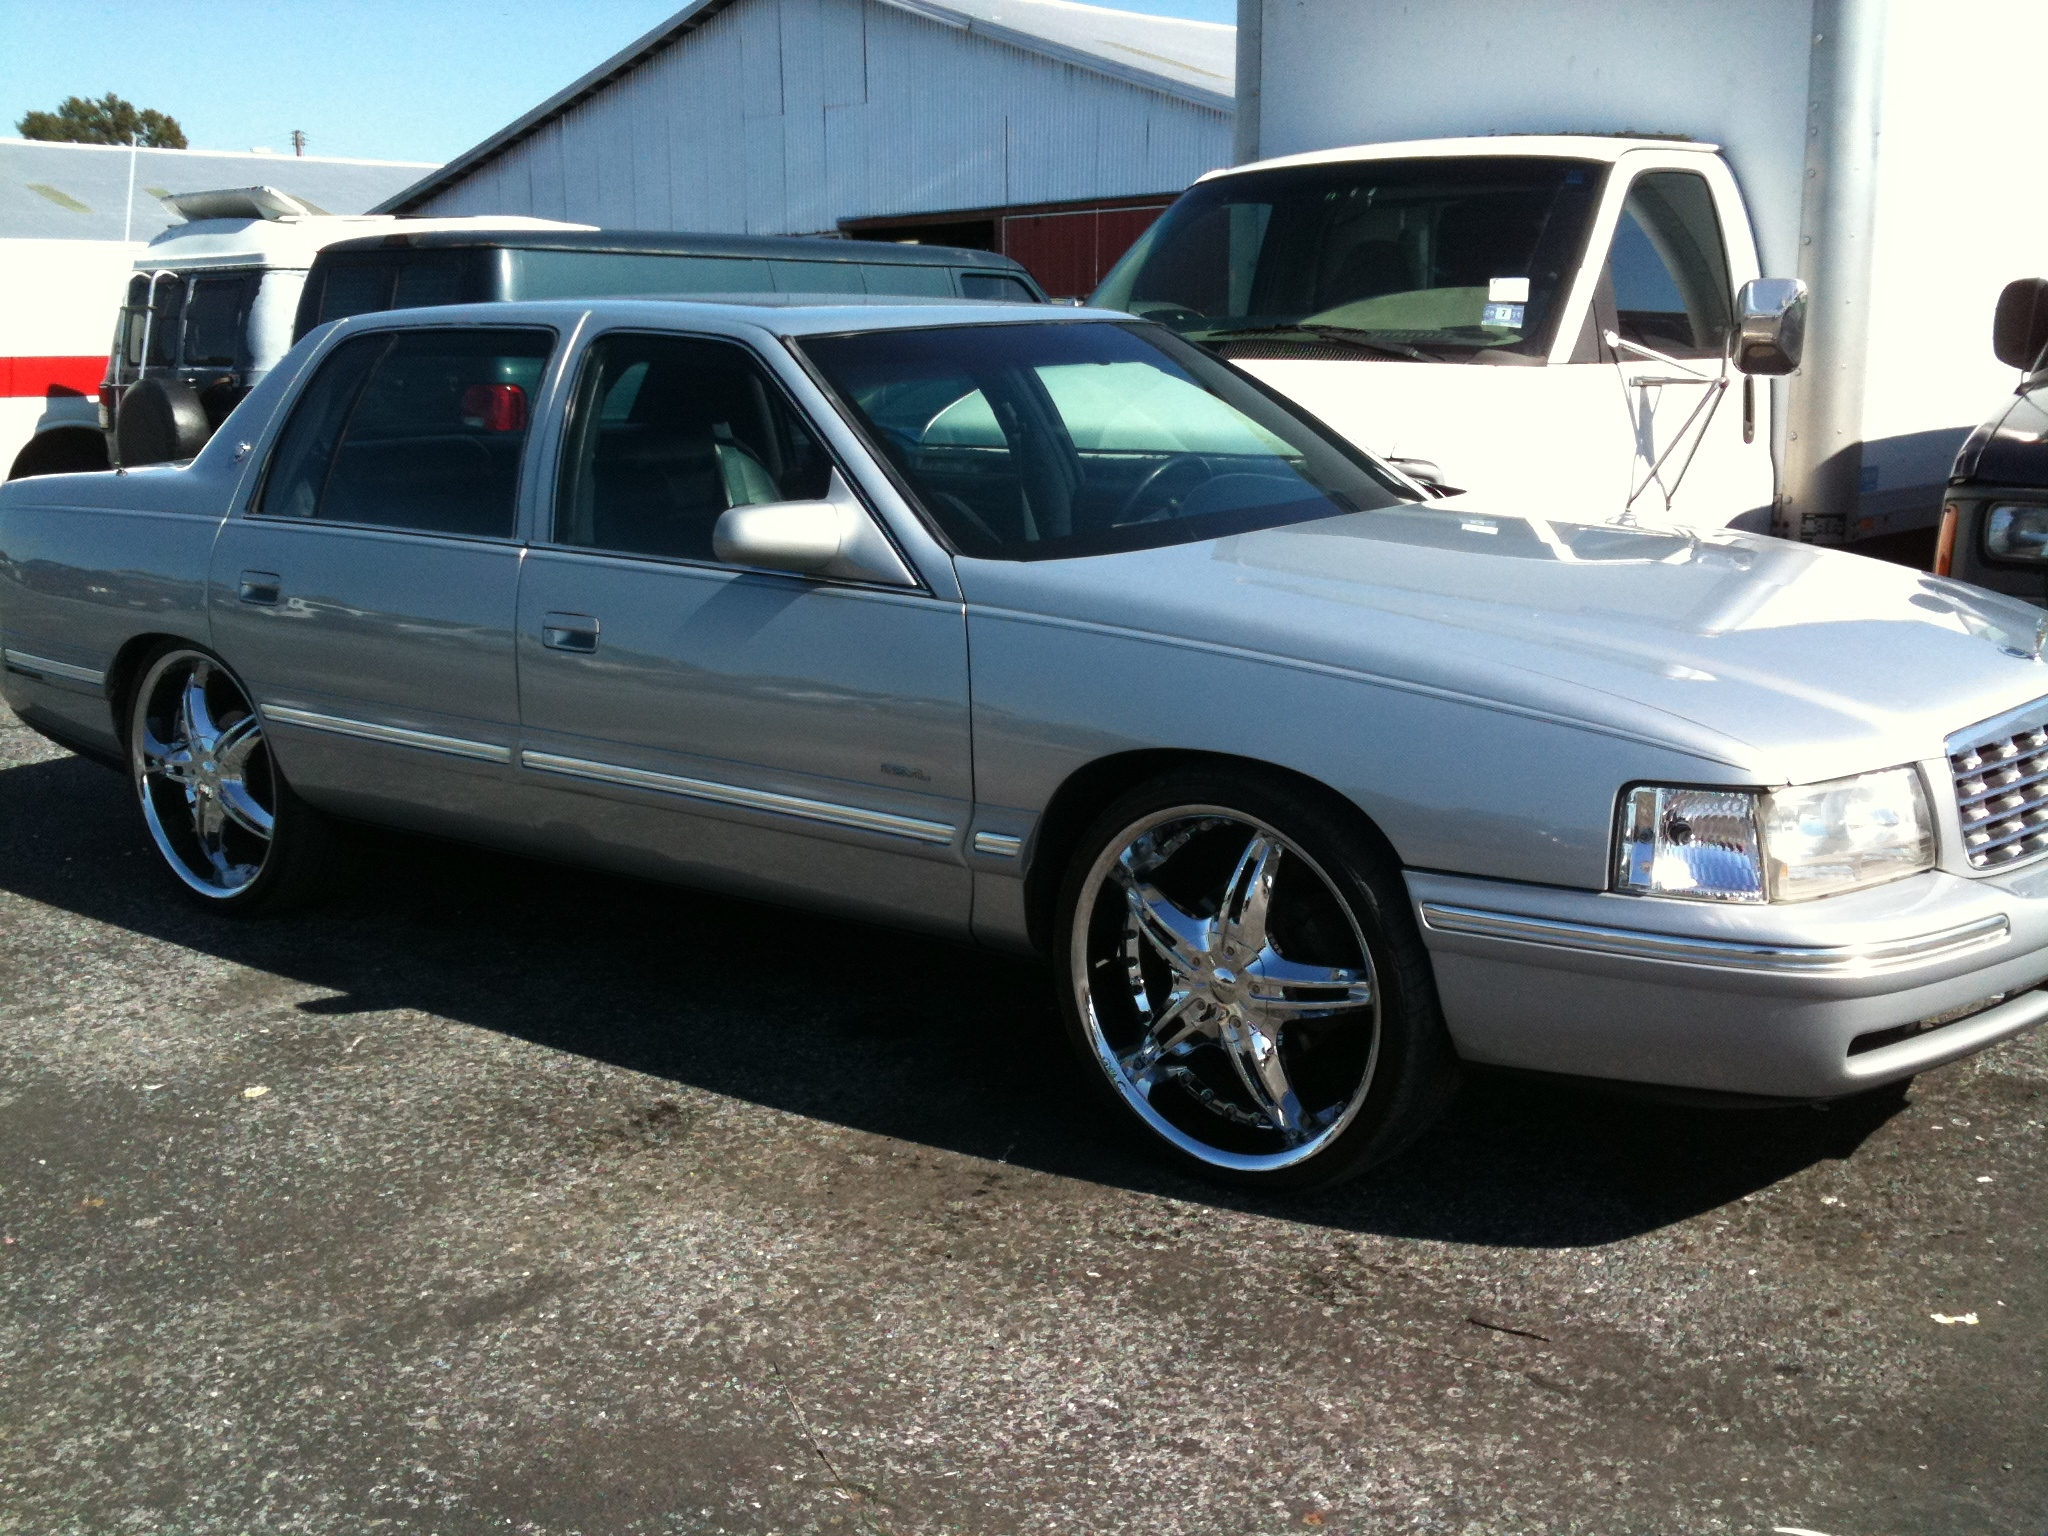 diamondy201 39 s 1998 cadillac deville sedan 4d in jersey nj. Cars Review. Best American Auto & Cars Review